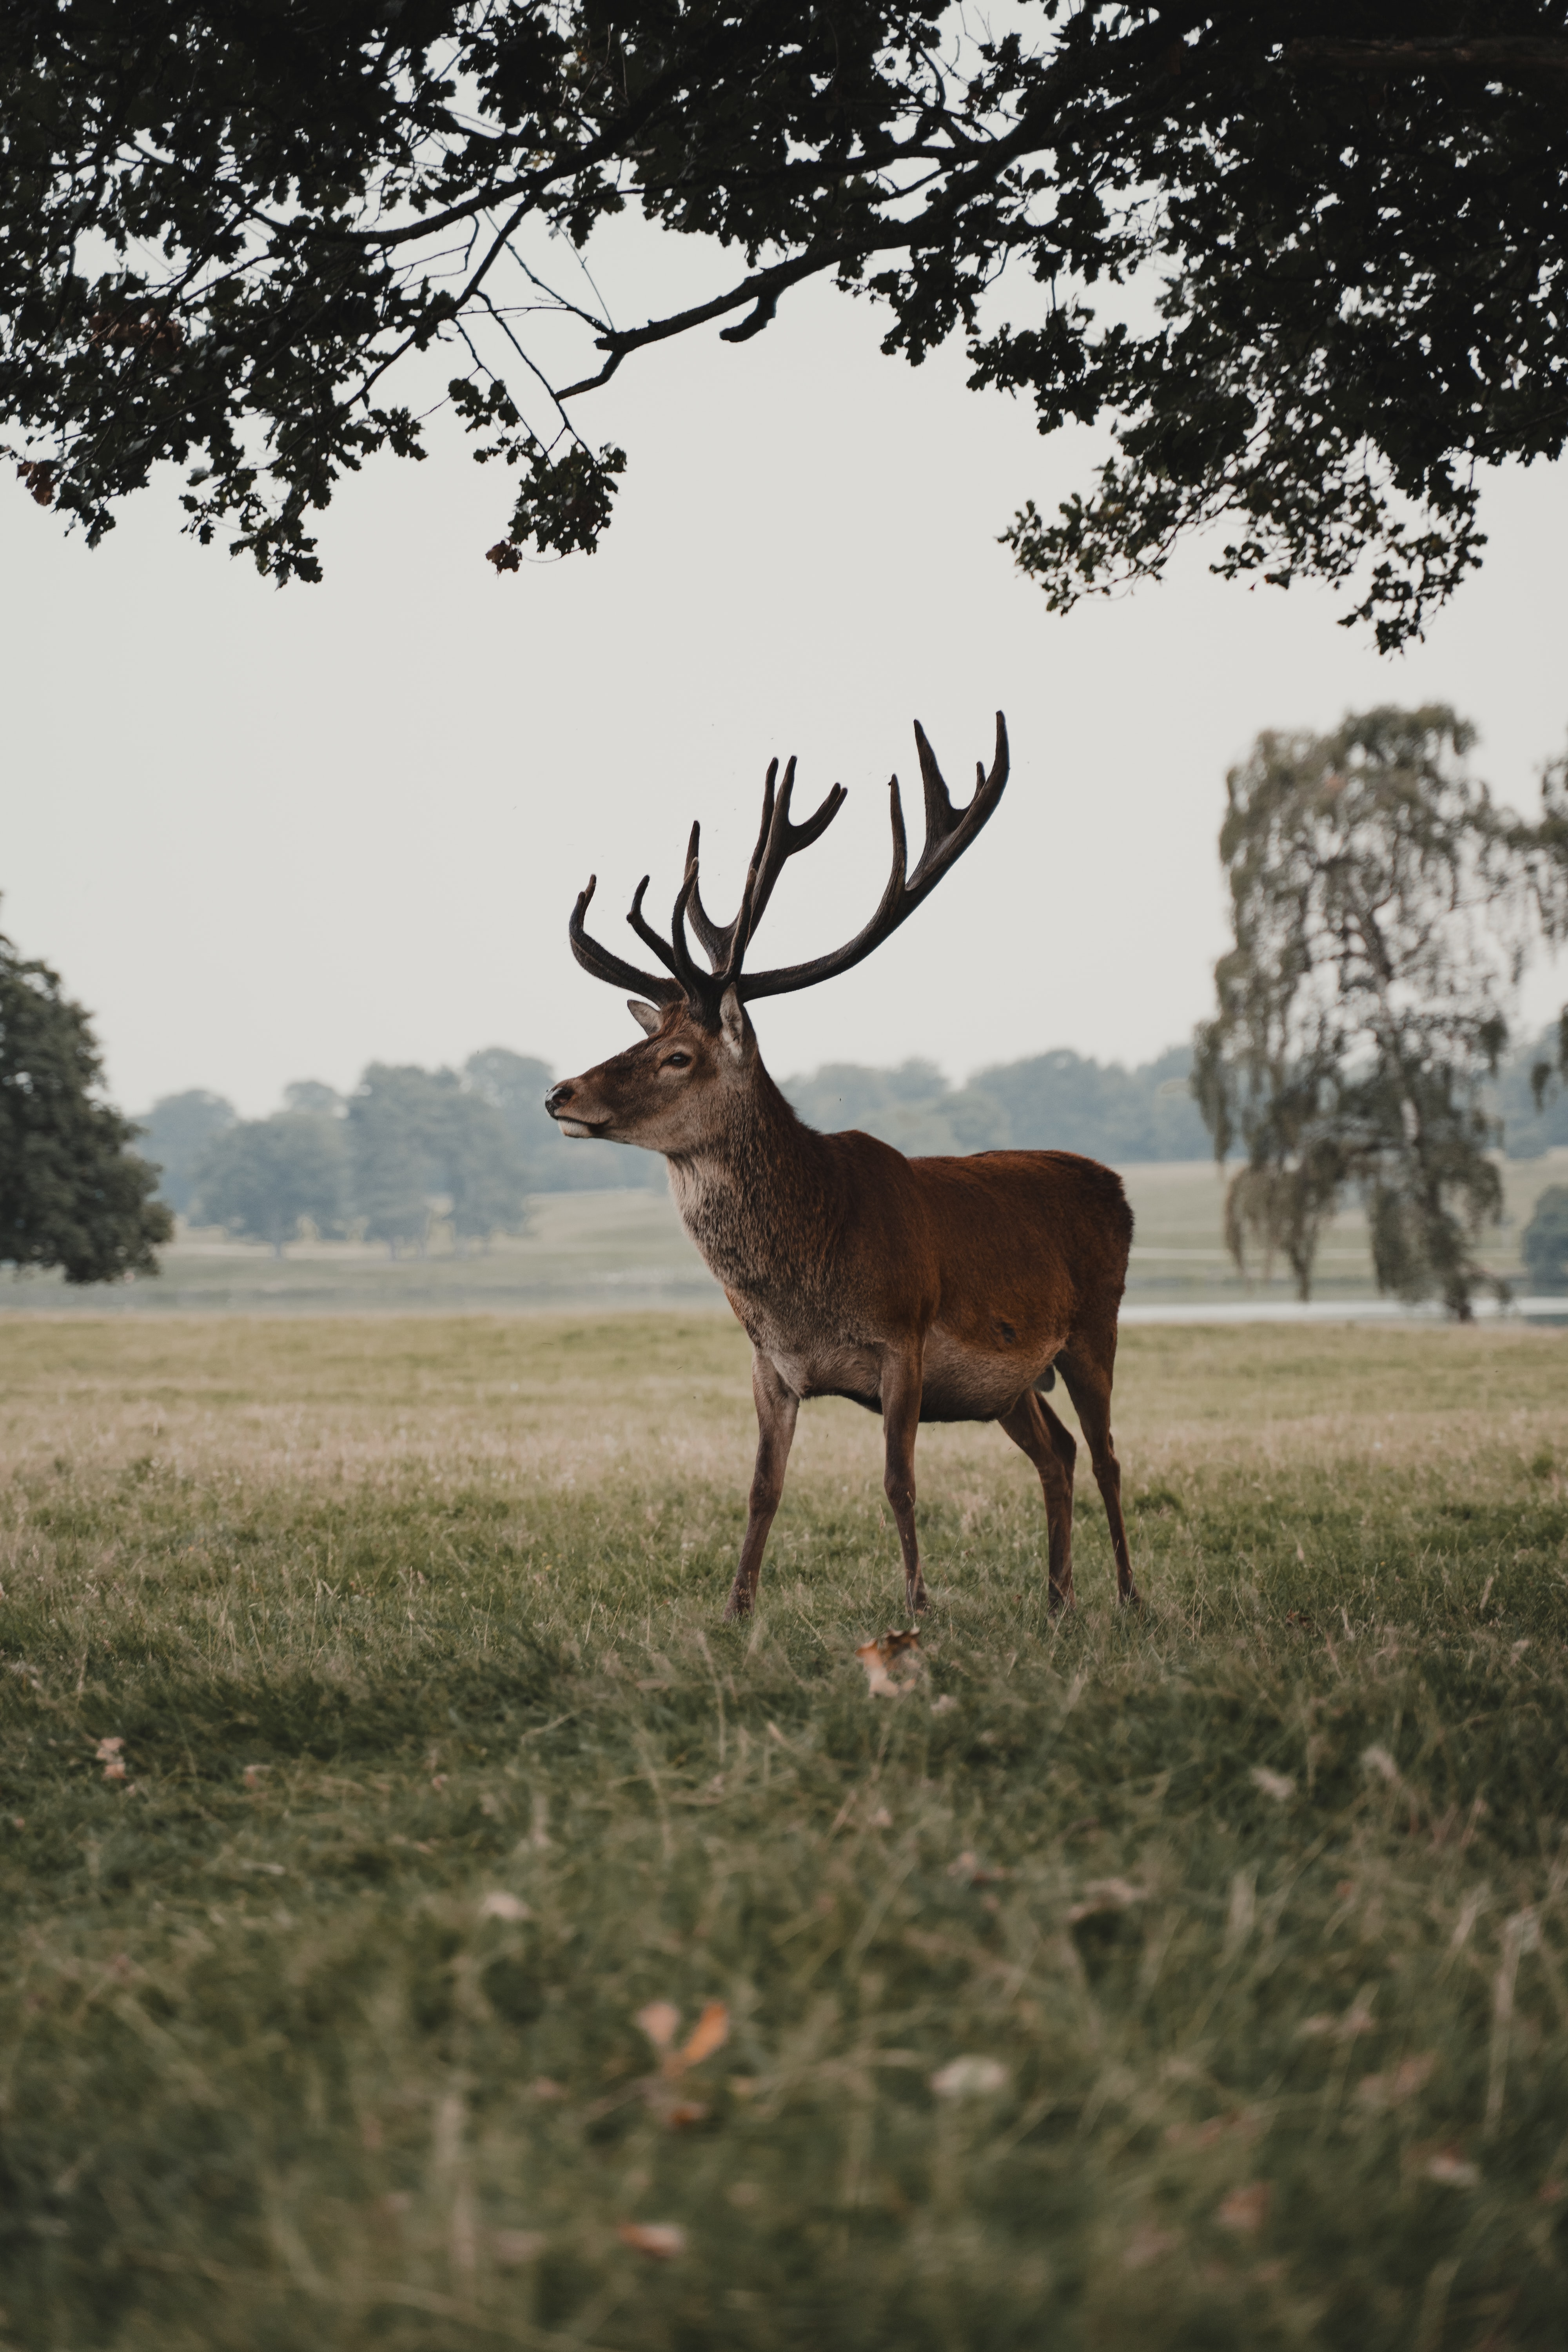 76628 download wallpaper Animals, Deer, Animal, Field, Wildlife screensavers and pictures for free